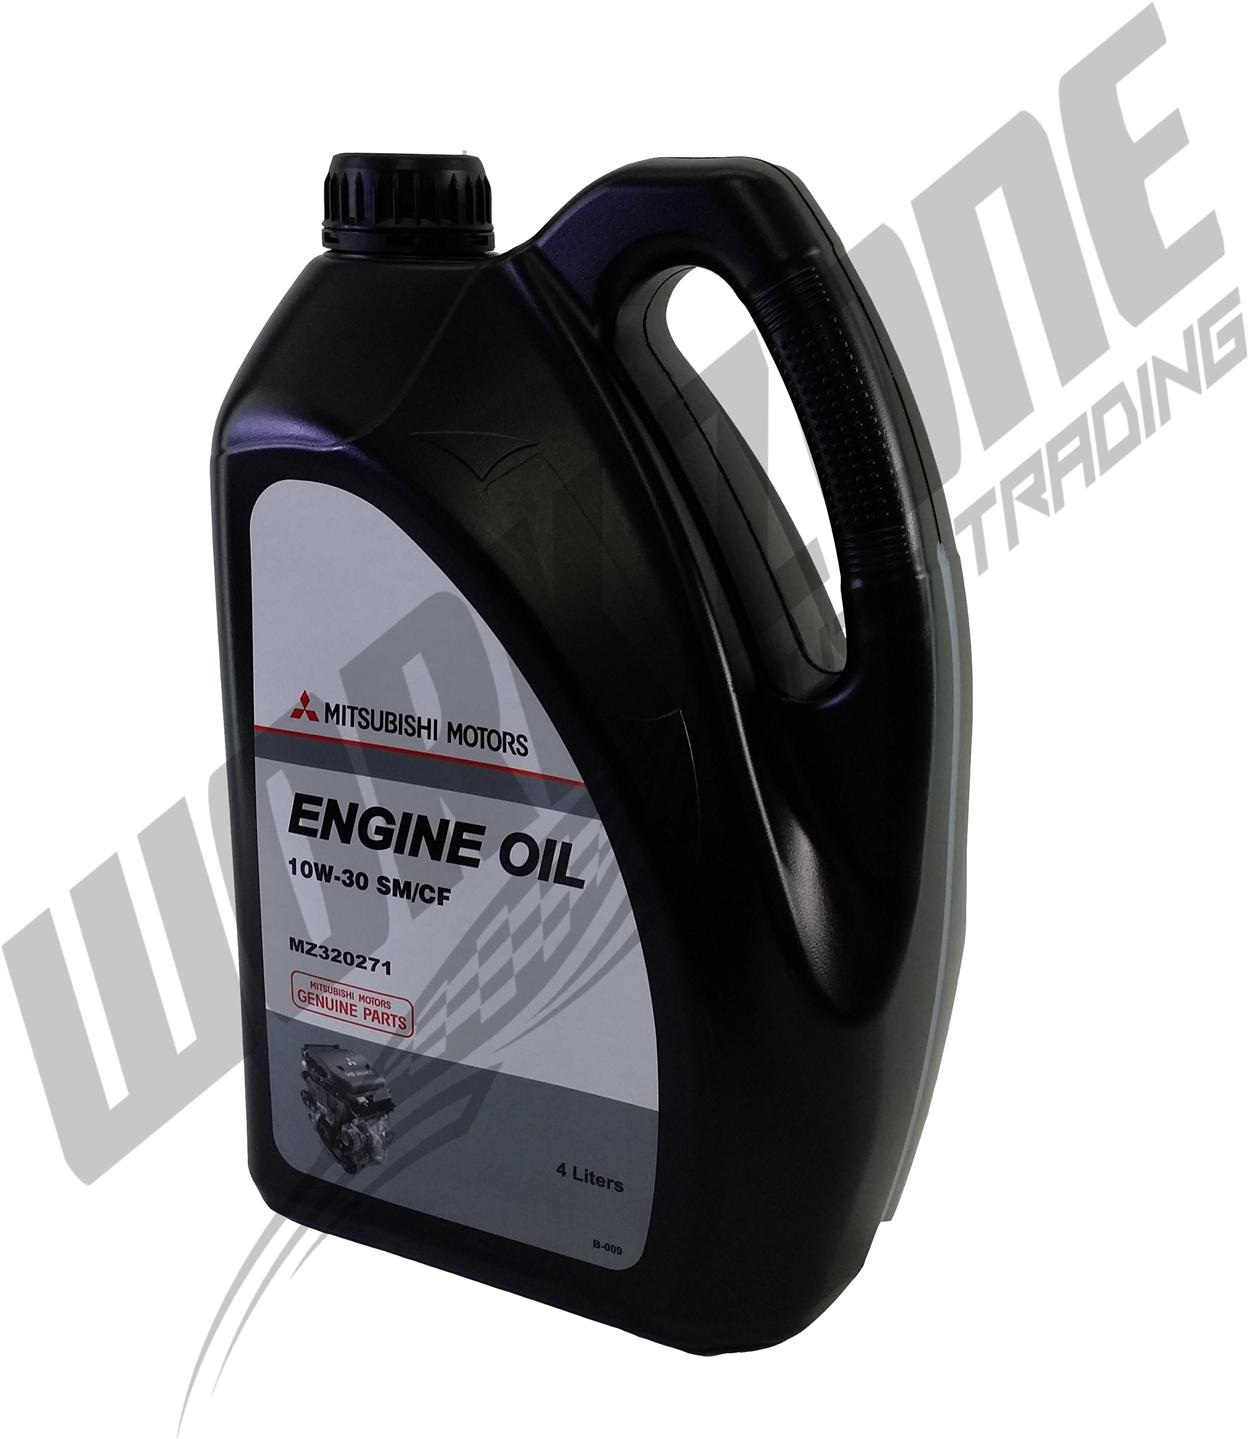 MITSUBISHI MOTORS GENUINE MINERAL 10W30 ENGINE OIL